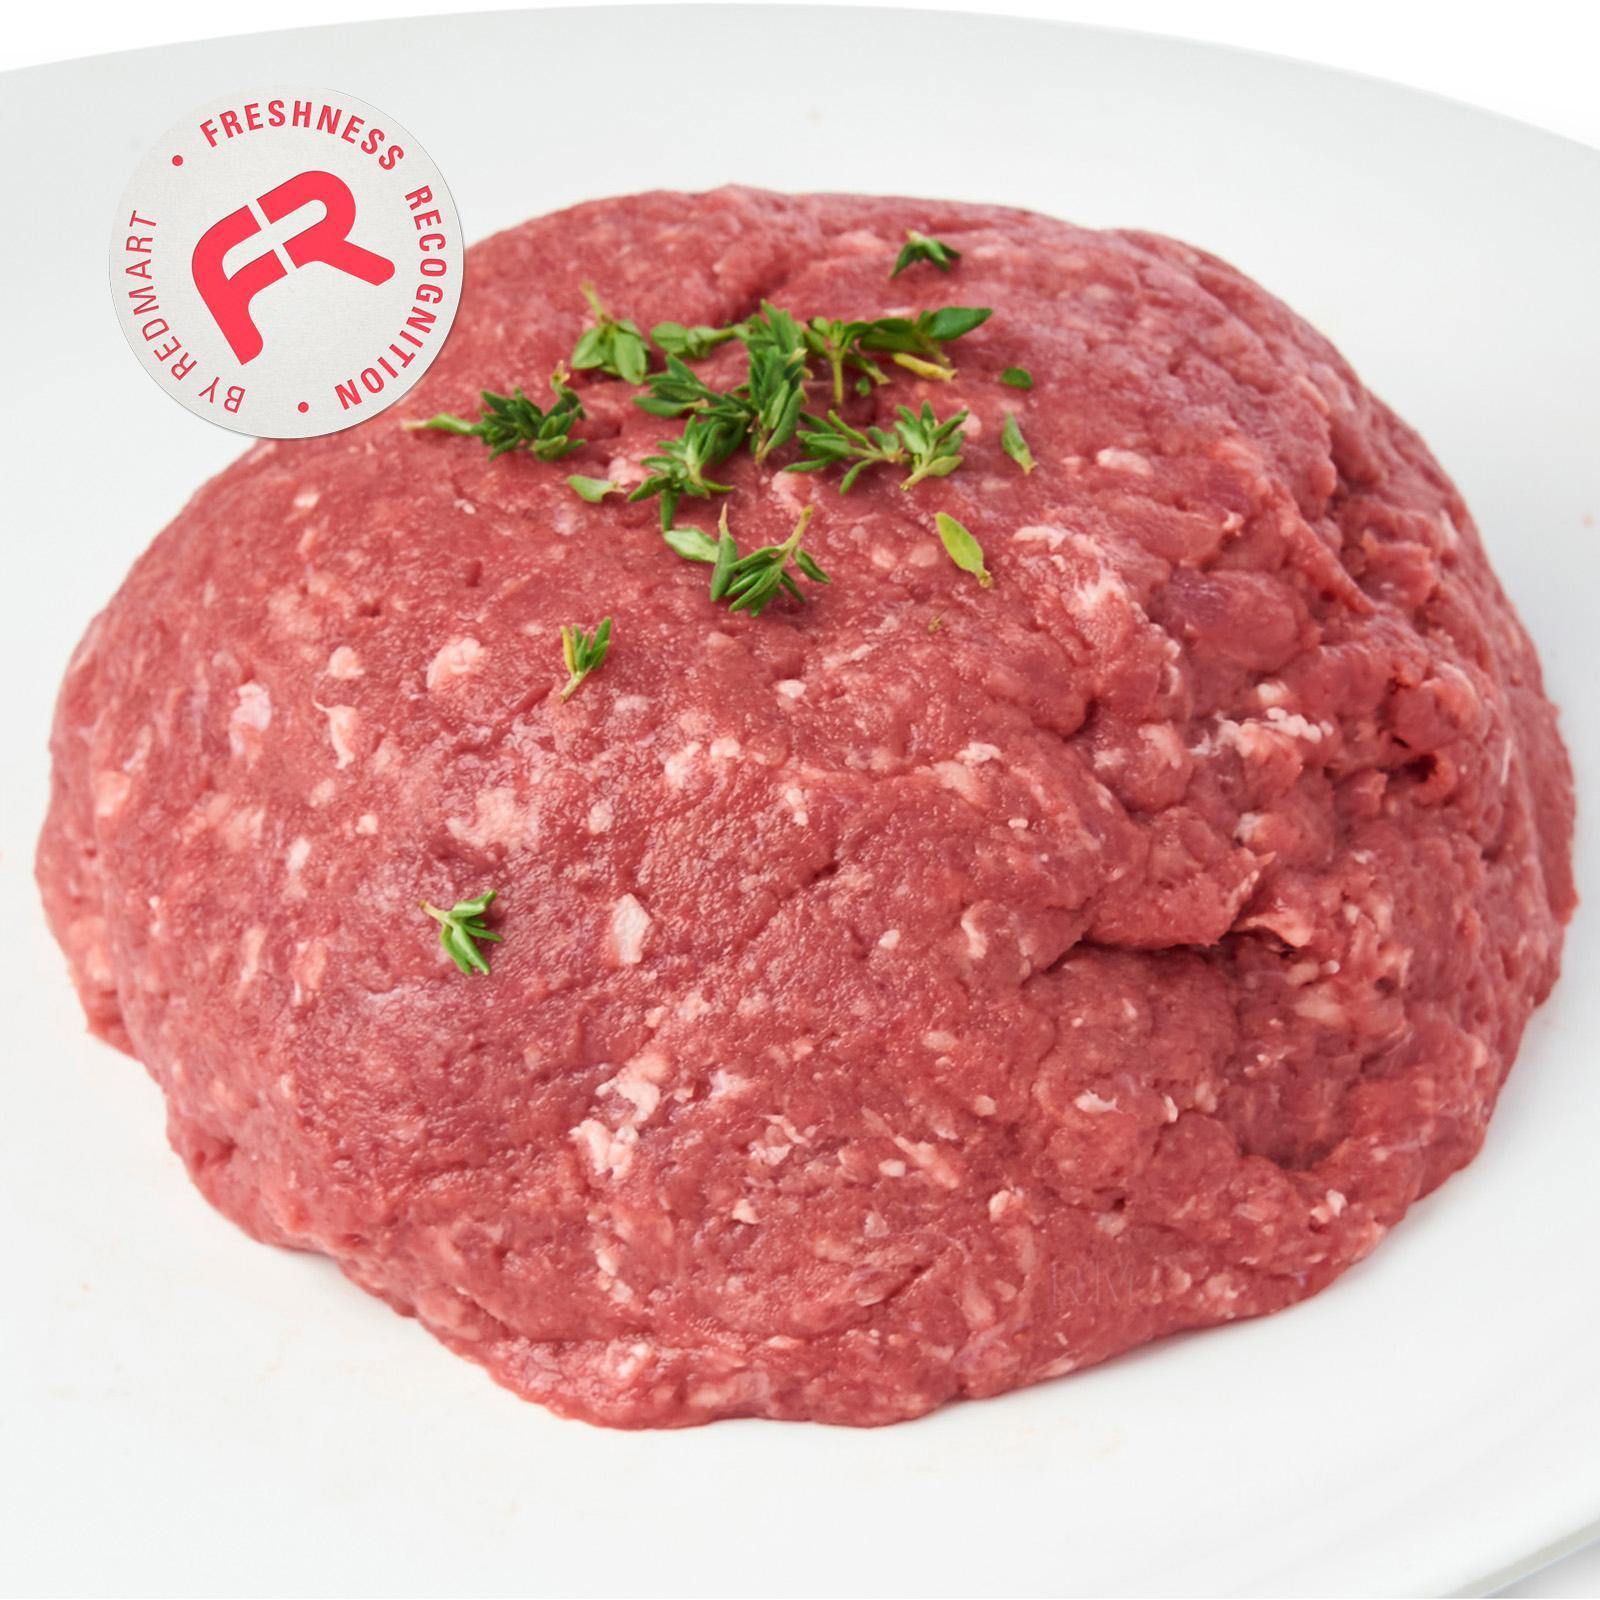 Greenlea Grass Fed Beef Mince - New Zealand By Redmart.